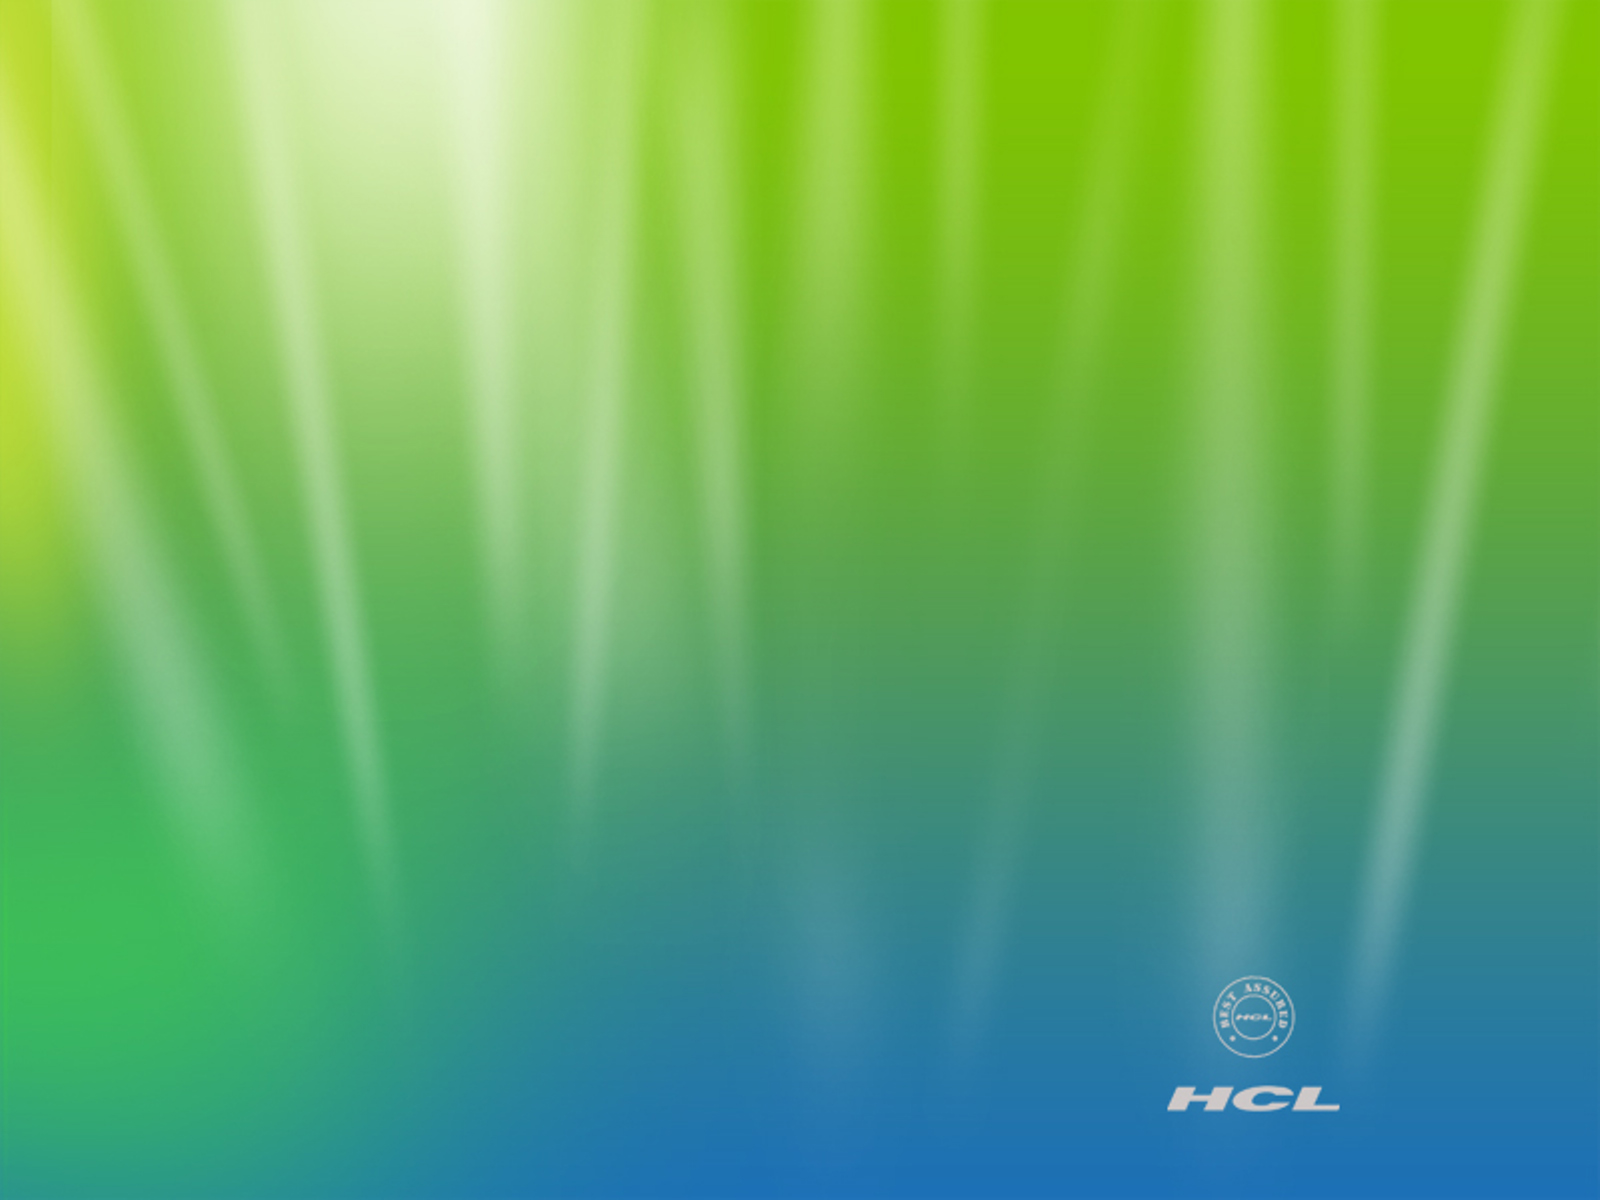 1600x1200 hcl 3 desktop pc and mac wallpaper - Wallpaper images ...